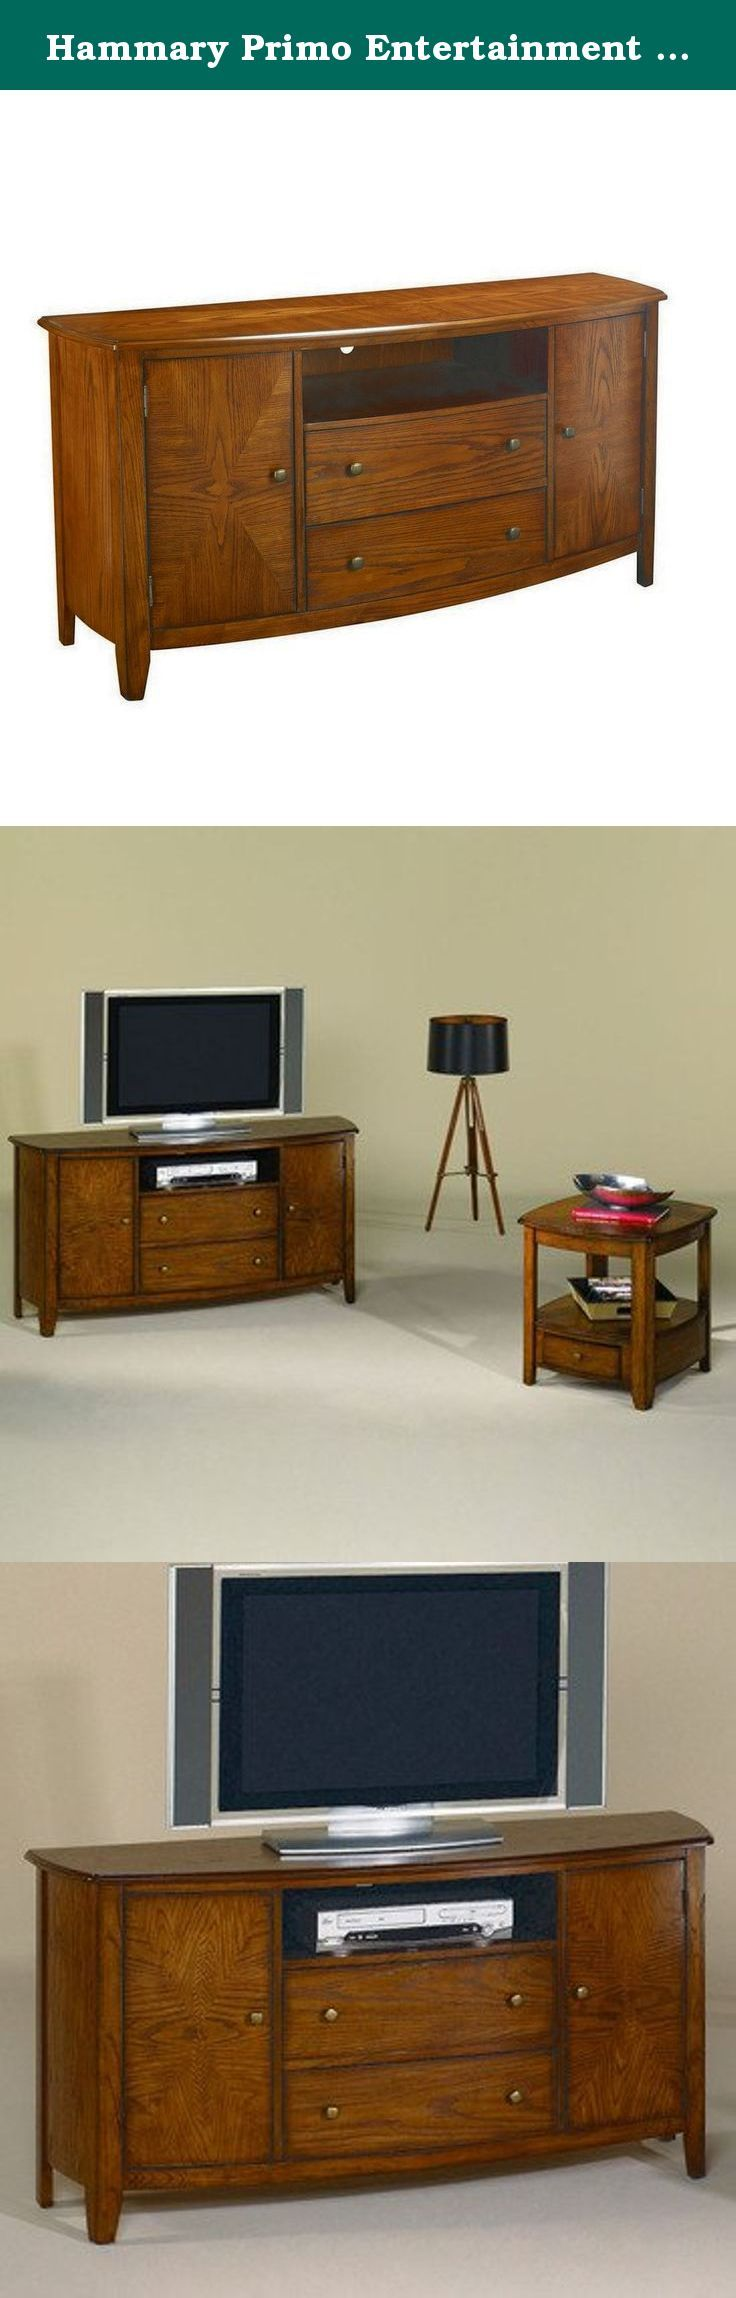 "Hammary Primo Entertainment Console in Brown. Features: Warm Medium Brown Crafted from Cathedral Oak Veneer, Select Hardwood Solids and Wood Products Combines cathedral oak veneers with bold curved shapes Reverse diamond pattern on table tops and shelves Includes media storage drawers, an open compartment for audiovisual components and two doors with storage space inside Transitional StyleSpecifications: Overall Dimensions: 60""W x 19""D x 30""H Weight: 136 lbs."